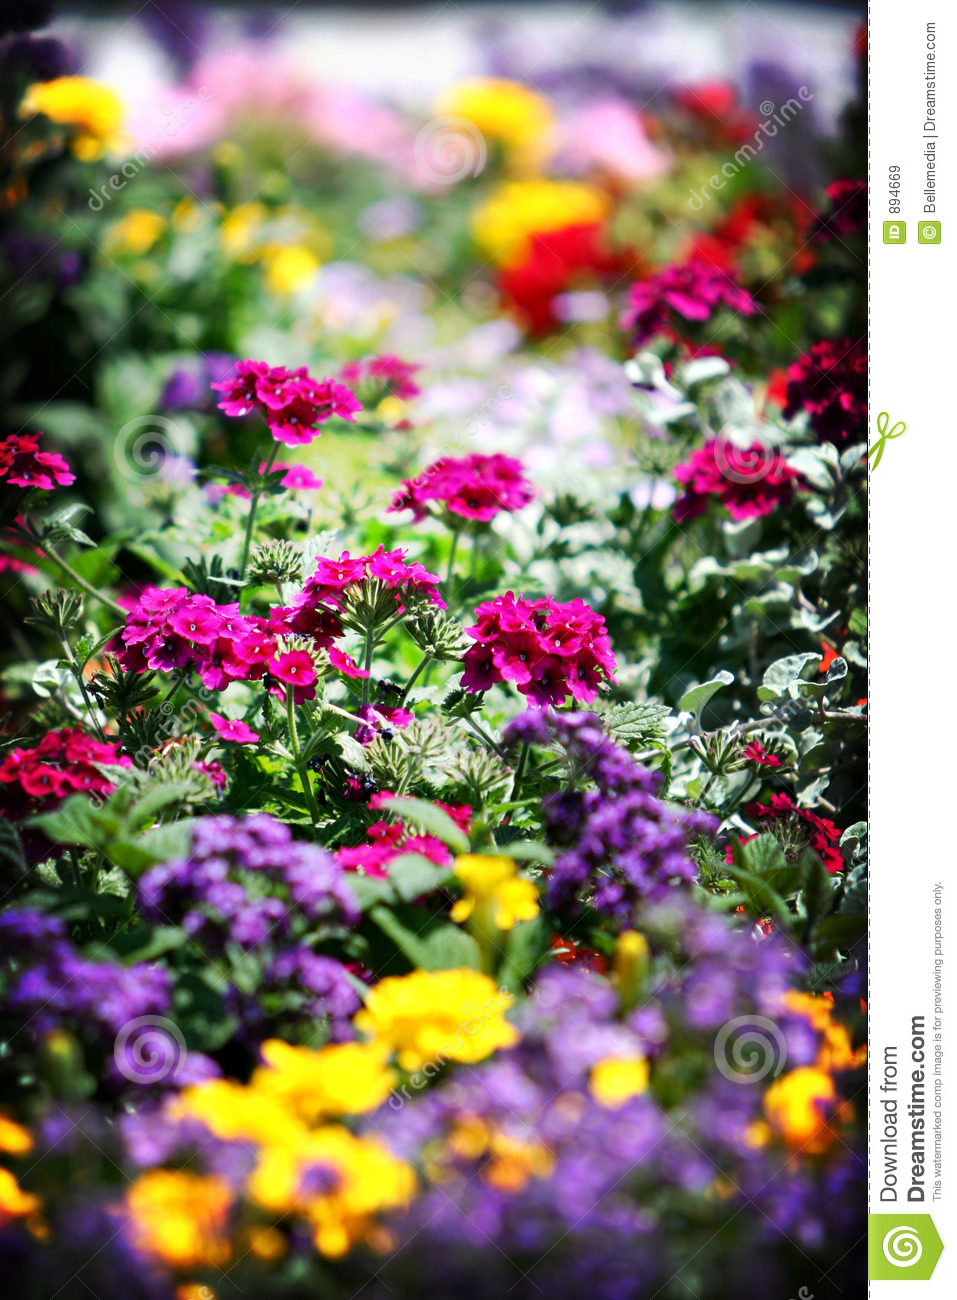 Free picture of flowers clip royalty free download Flower Bed Royalty Free Stock Images - Image: 894669 clip royalty free download